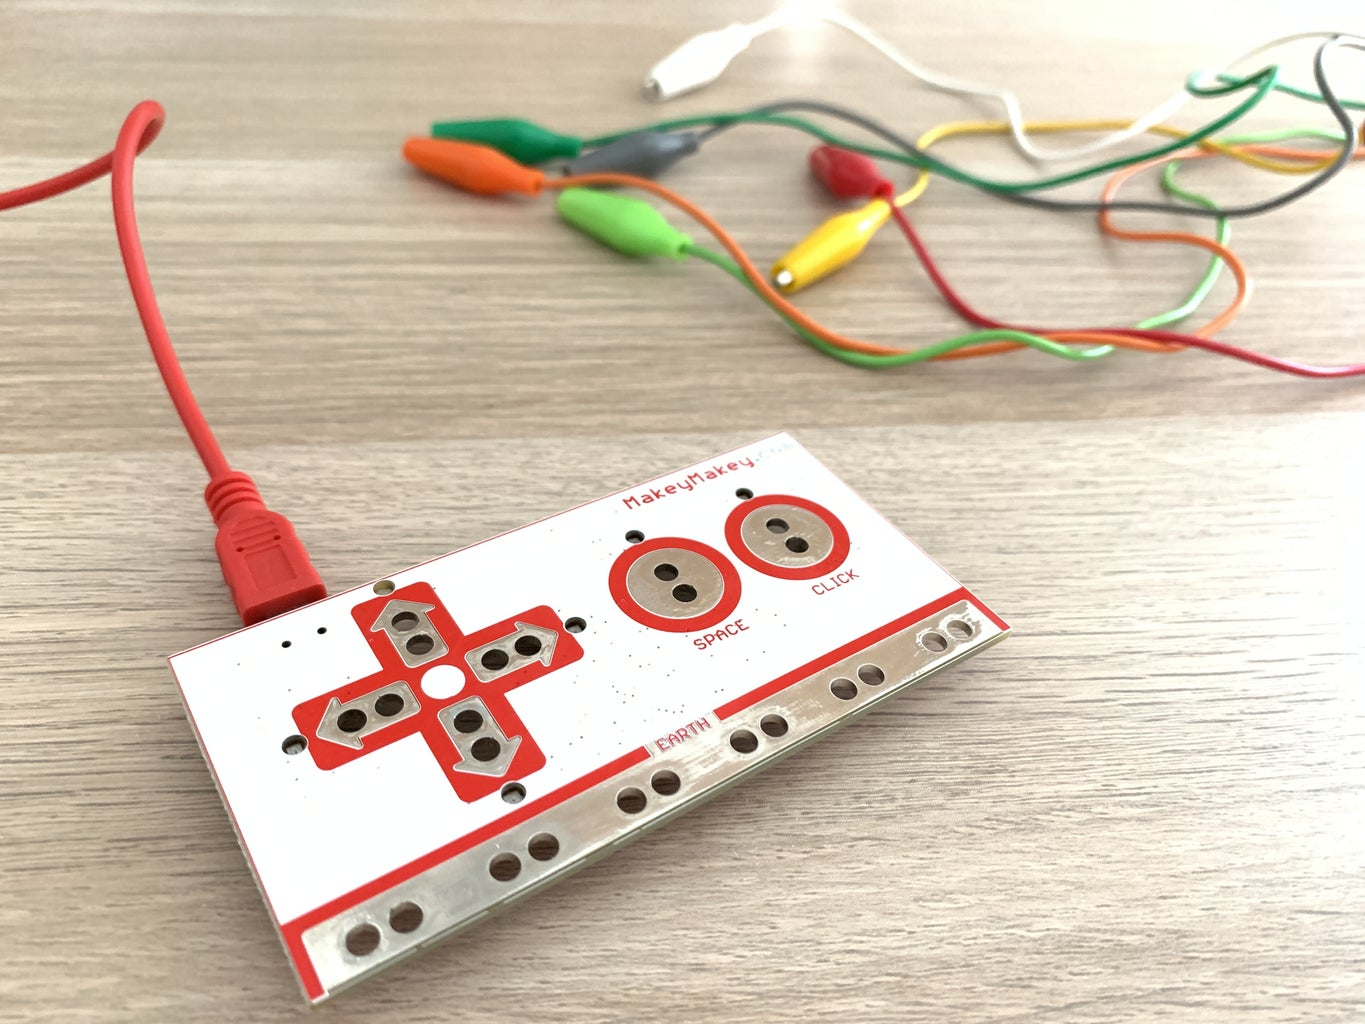 Identifying and Managing Our Emotions With Makey Makey